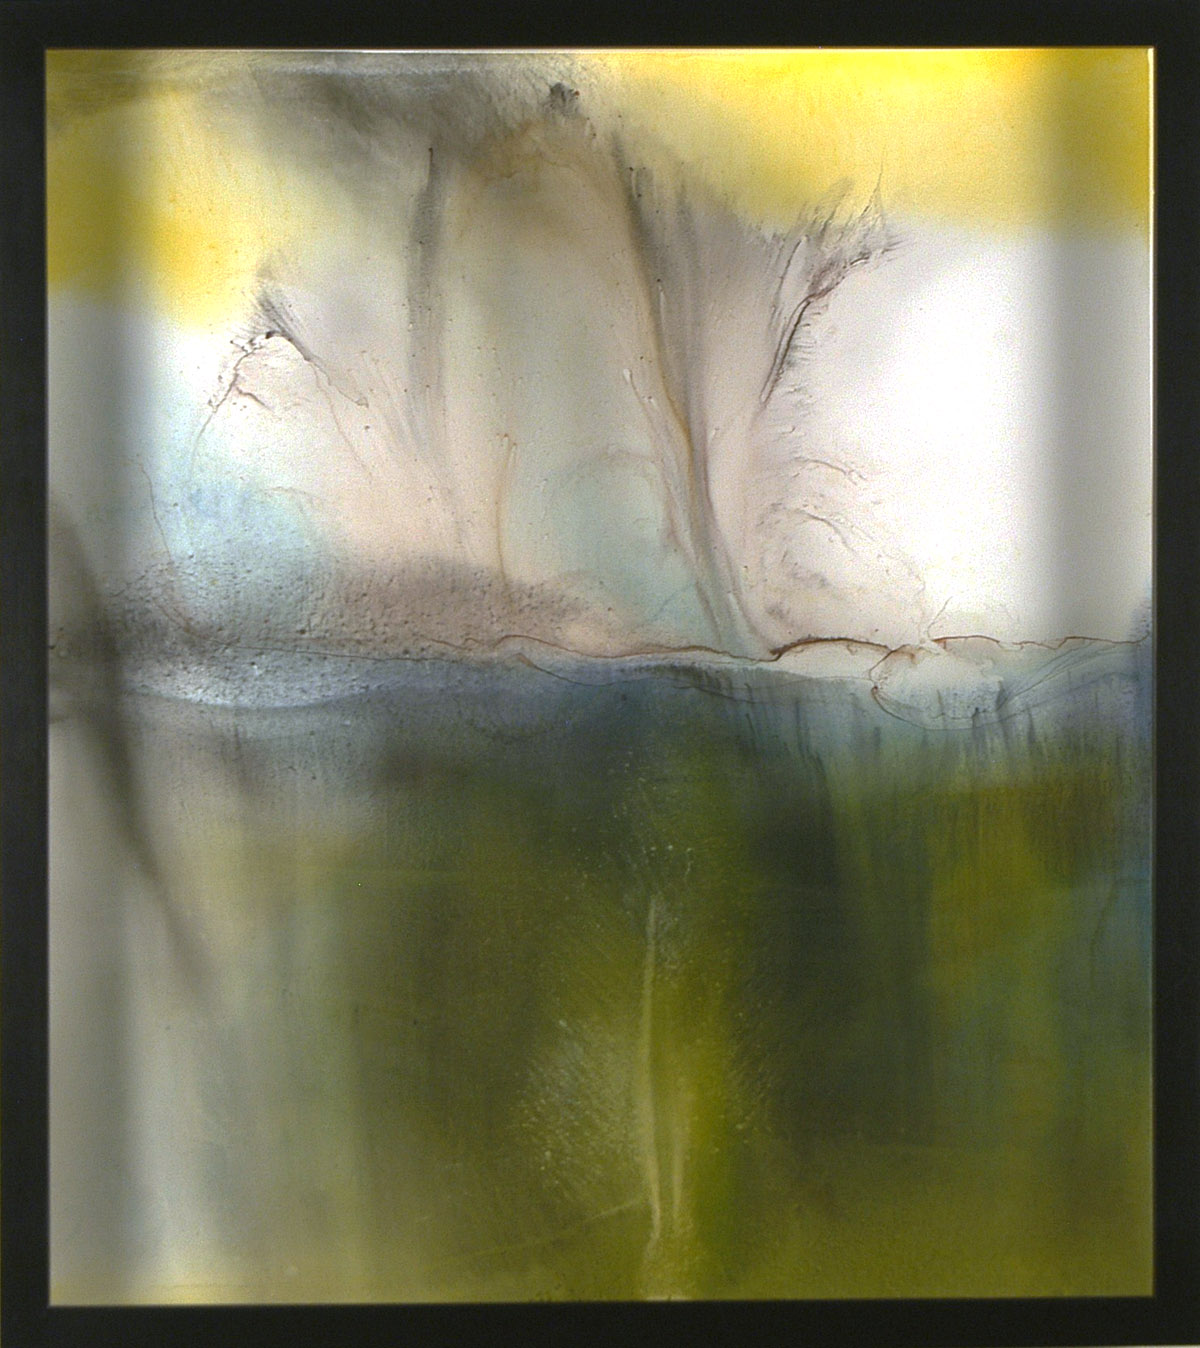 Jamaica Falls sumi ink and watercolor on glass and gesso panel 33 x 29 inches ERO 076G